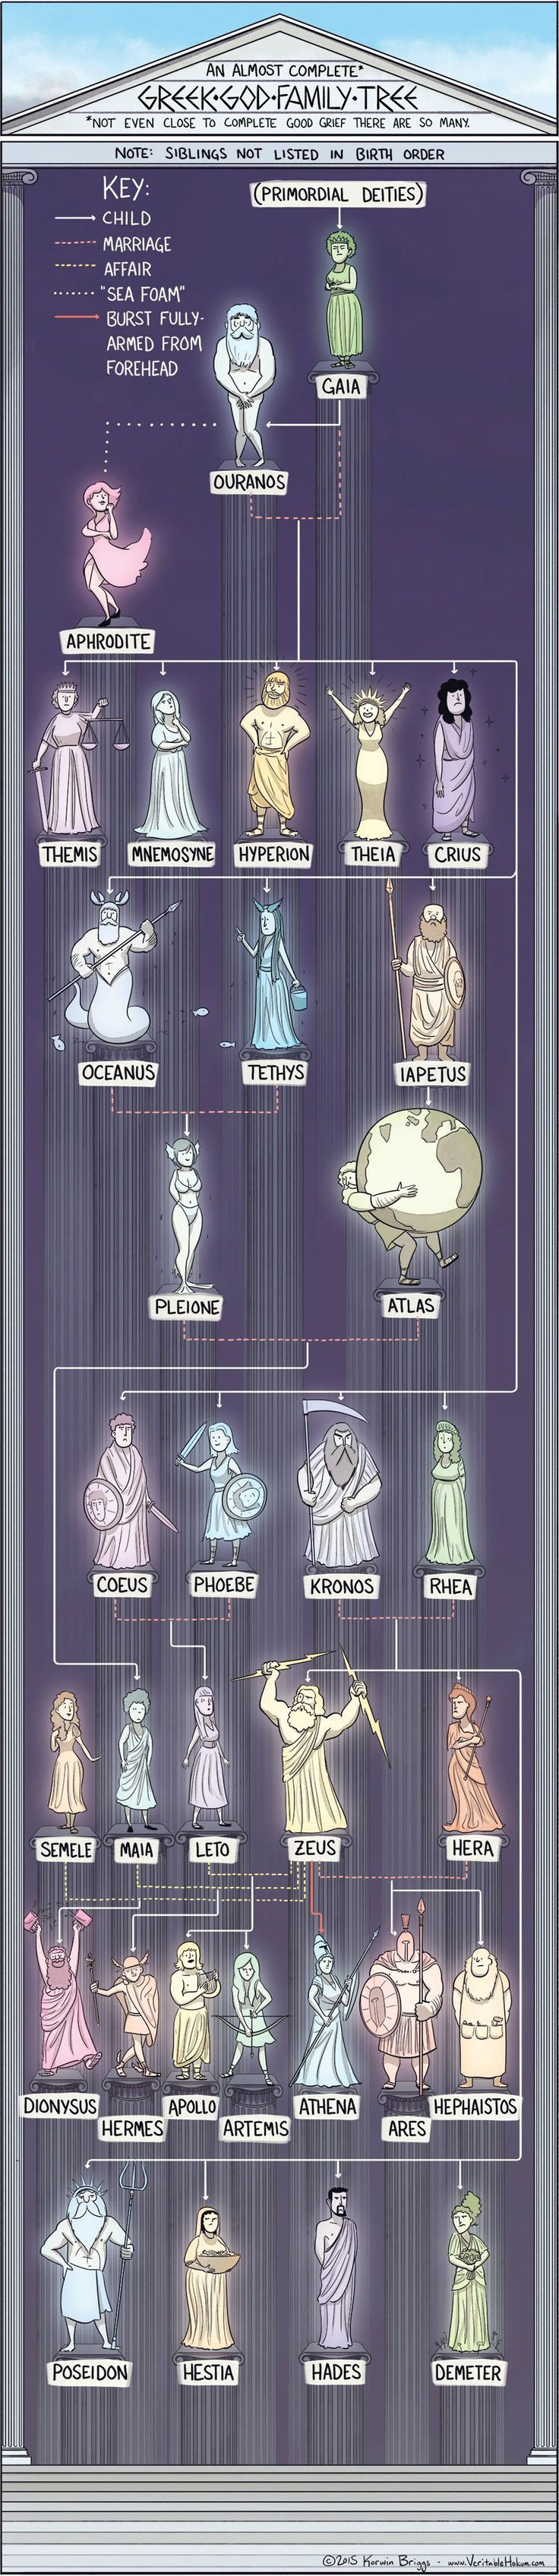 The Greek God Family Tree Infographic. Topic: religion, greece